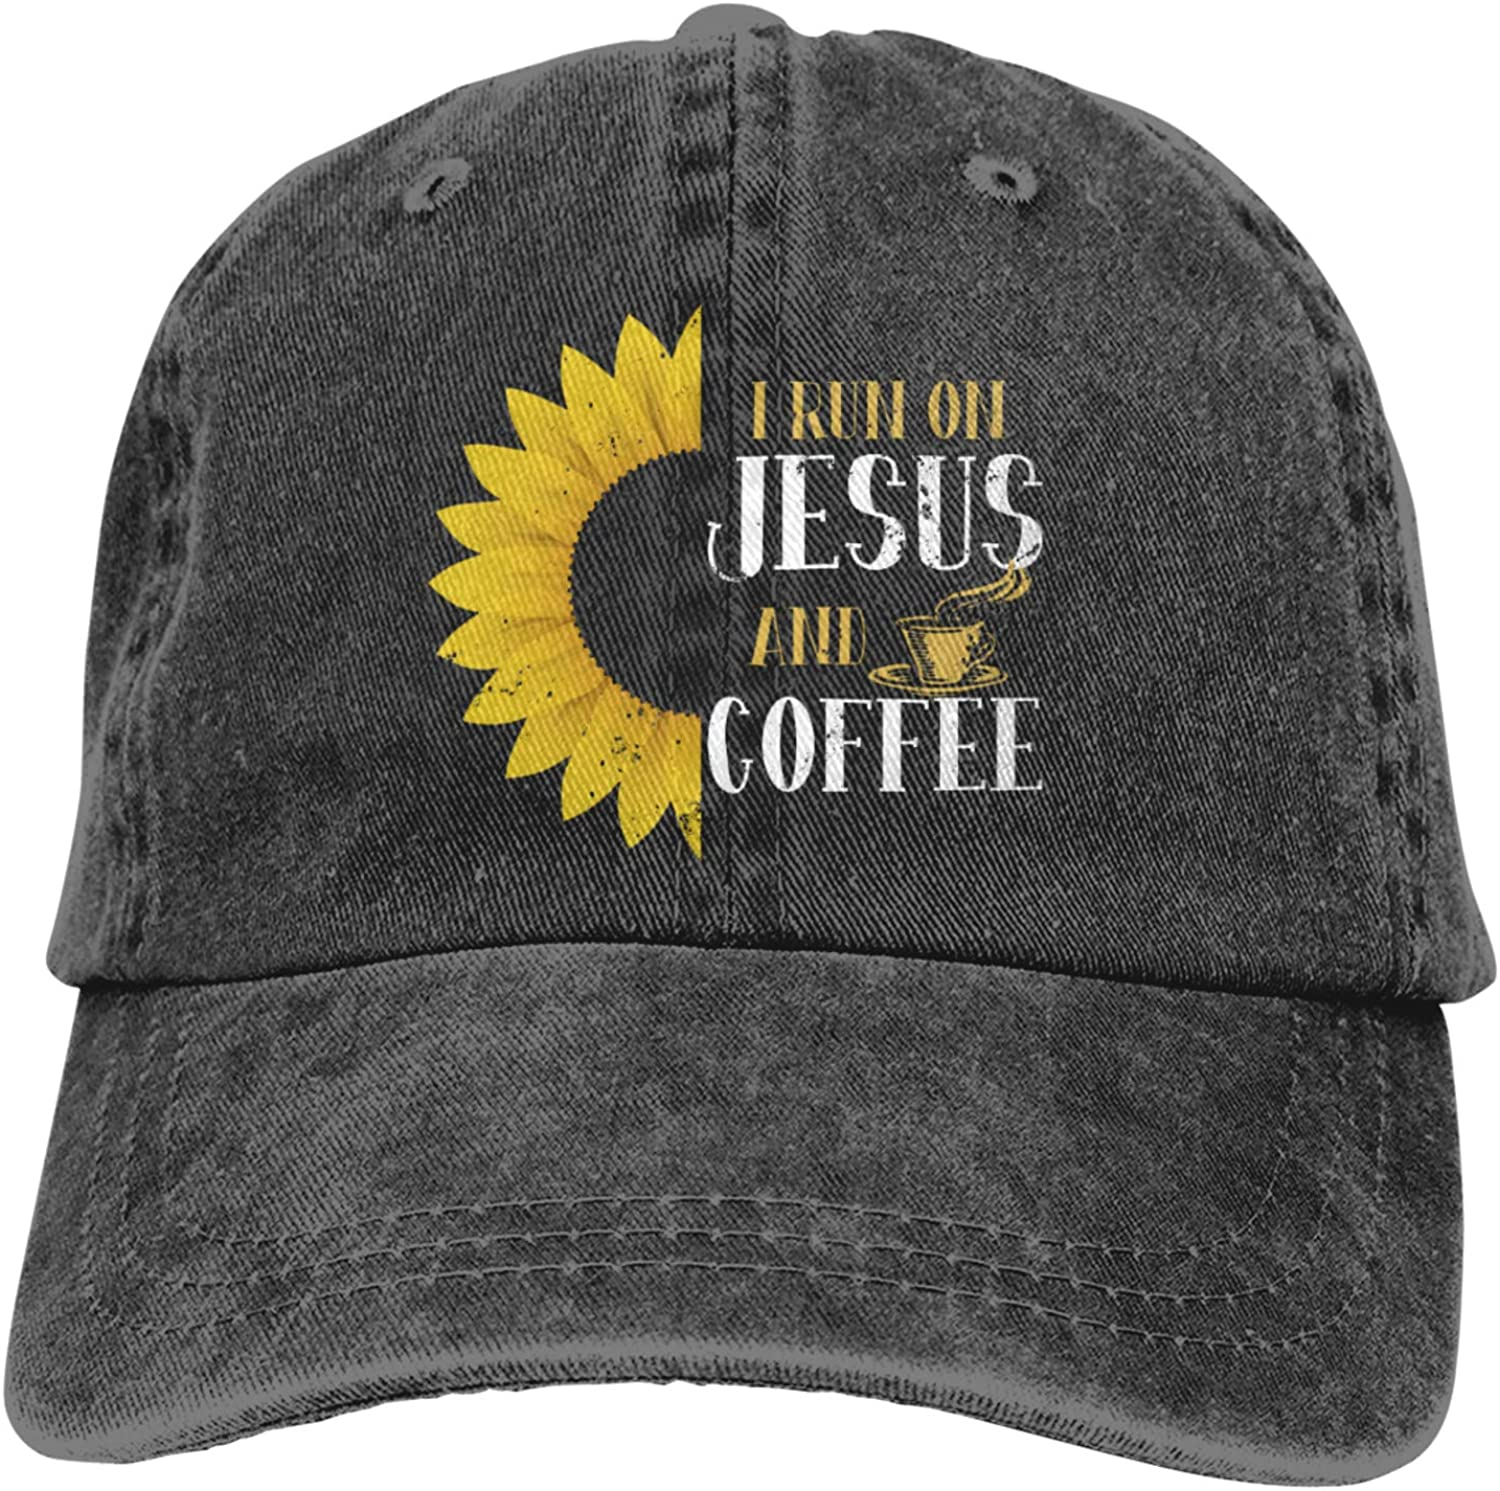 FOYOO Sunflower Jesus i Drink Coffee Unisex and Personalized Cowboy hat with Adjustable Sunshade